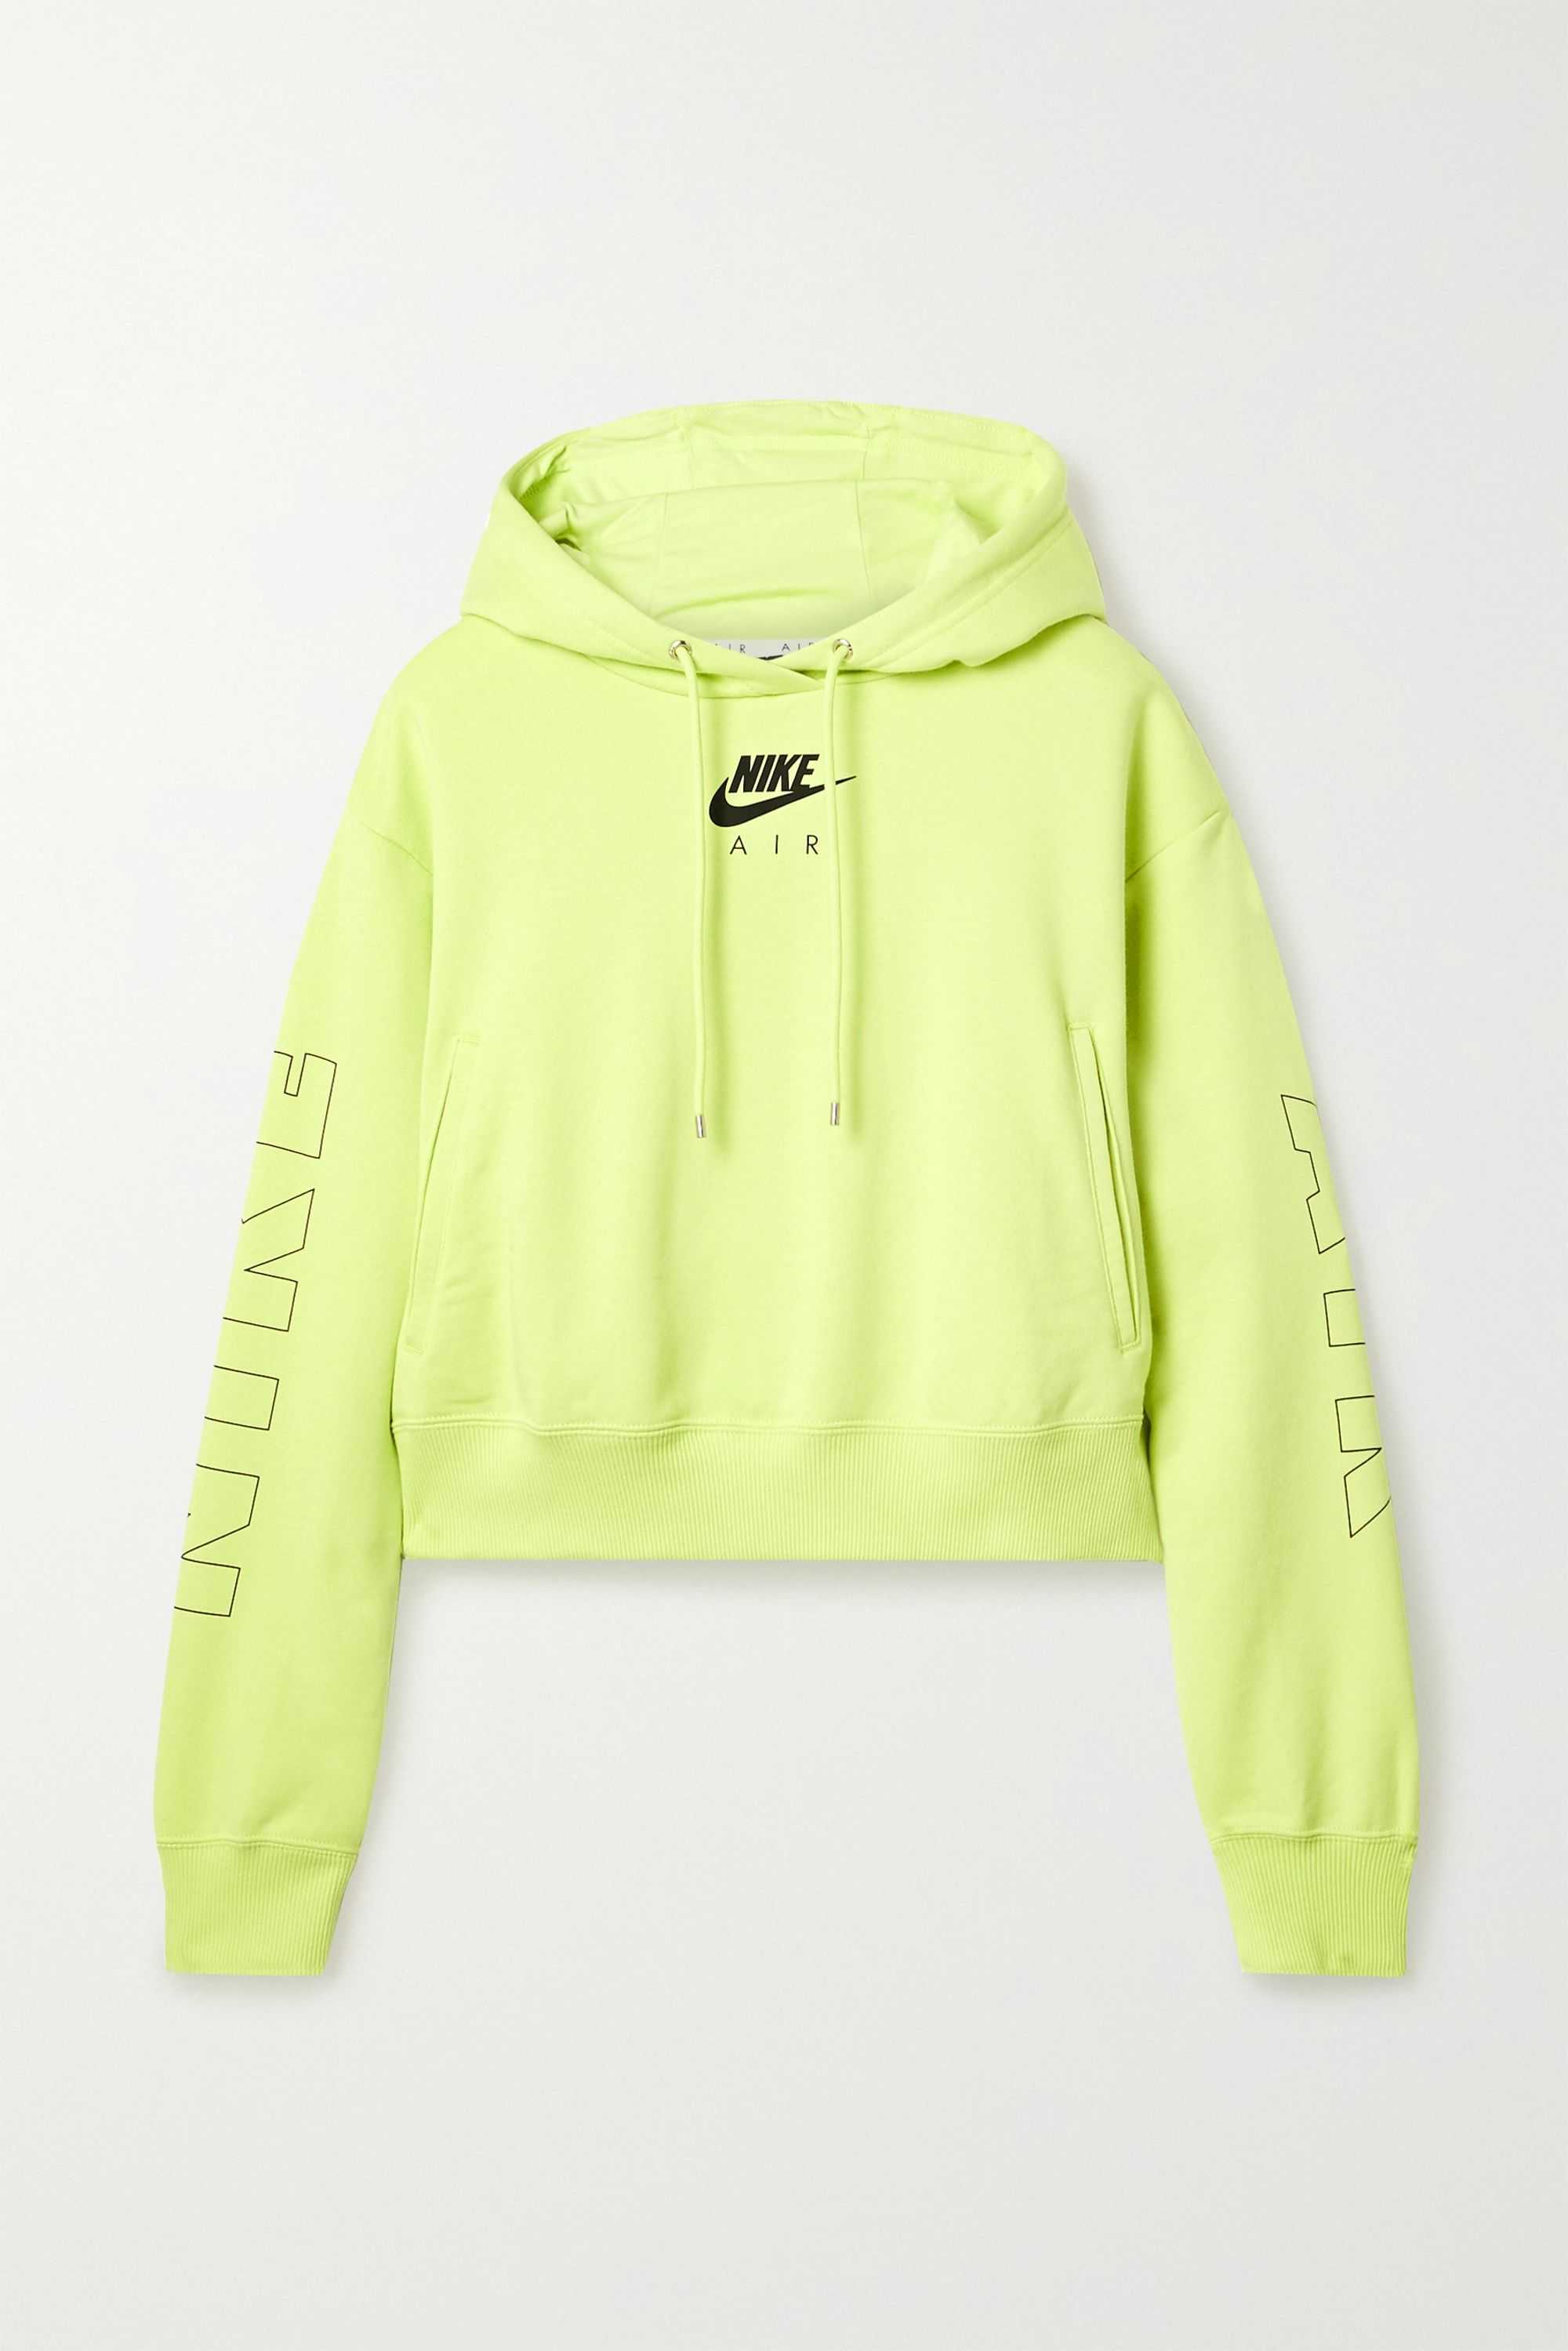 Whether You Re Cooling Down After A Hard Workout Or Just Warming Up Nike S Air Hoodie Will Keep You Feeling Comforta Hoodies Neon Sweatshirts Trendy Hoodies [ 2999 x 2000 Pixel ]